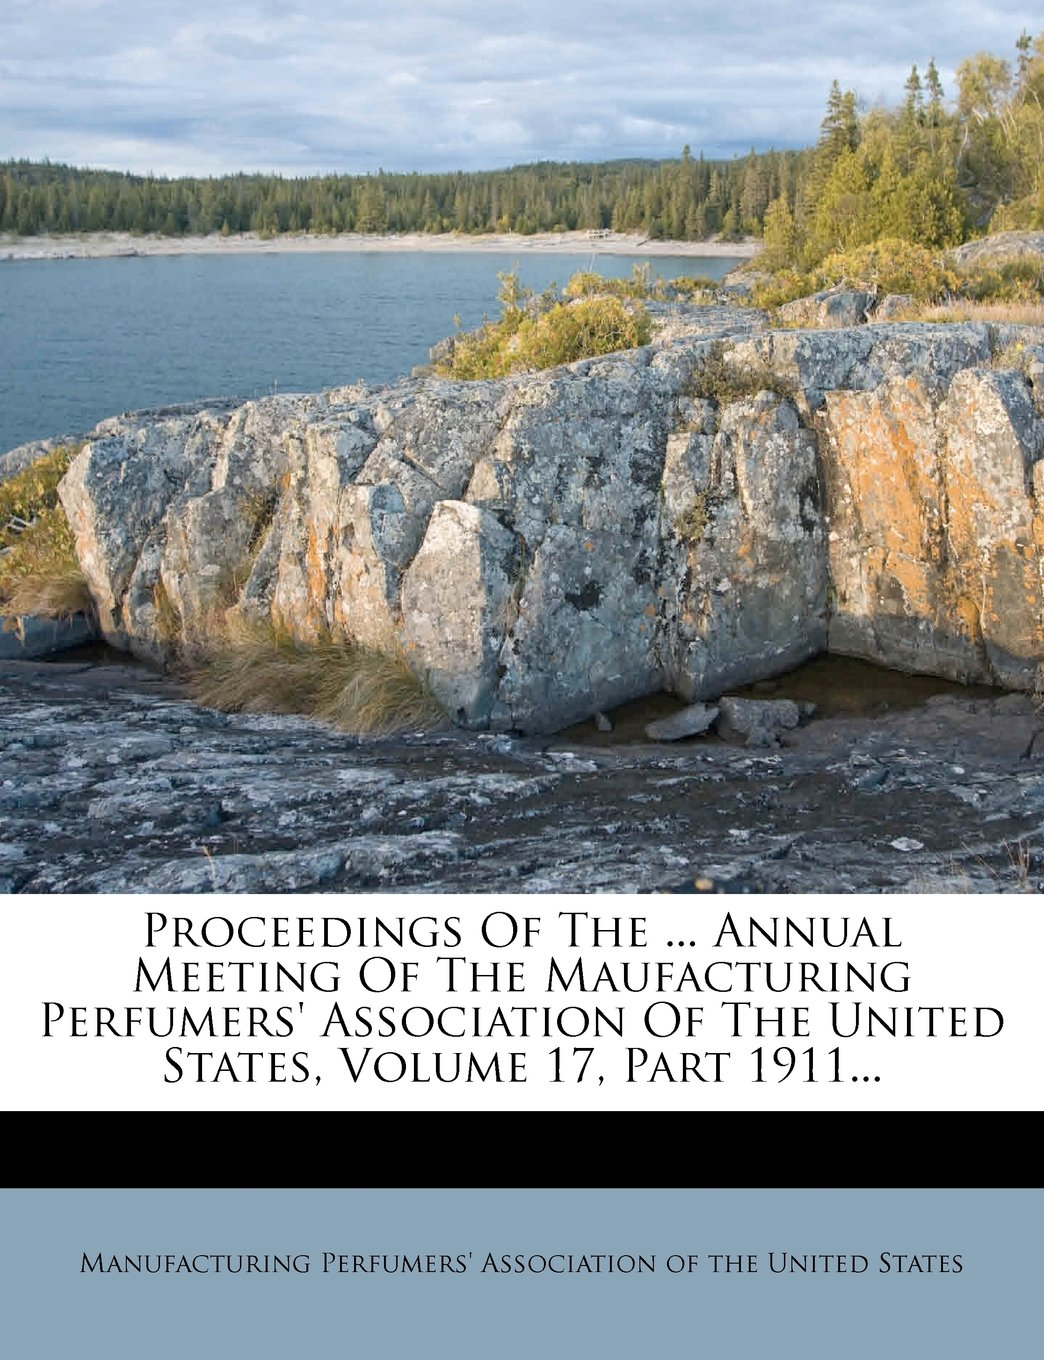 Proceedings Of The ... Annual Meeting Of The Maufacturing Perfumers' Association Of The United States, Volume 17, Part 1911... PDF